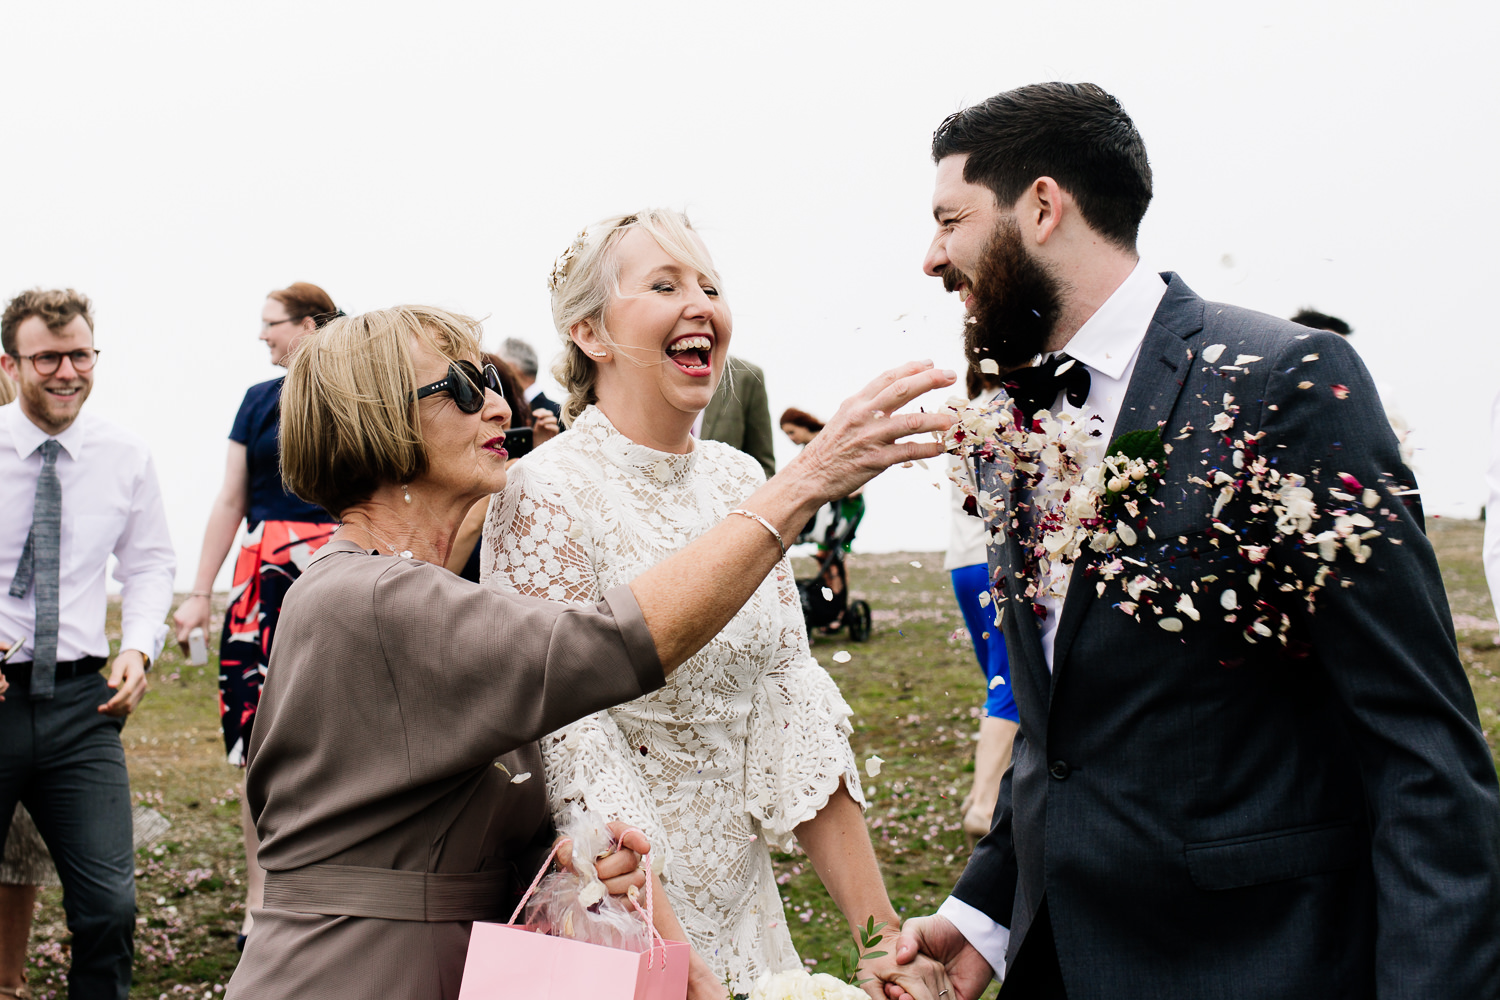 Confetti being thrown at a groom, by Wales wedding photographers, About Today Photography.